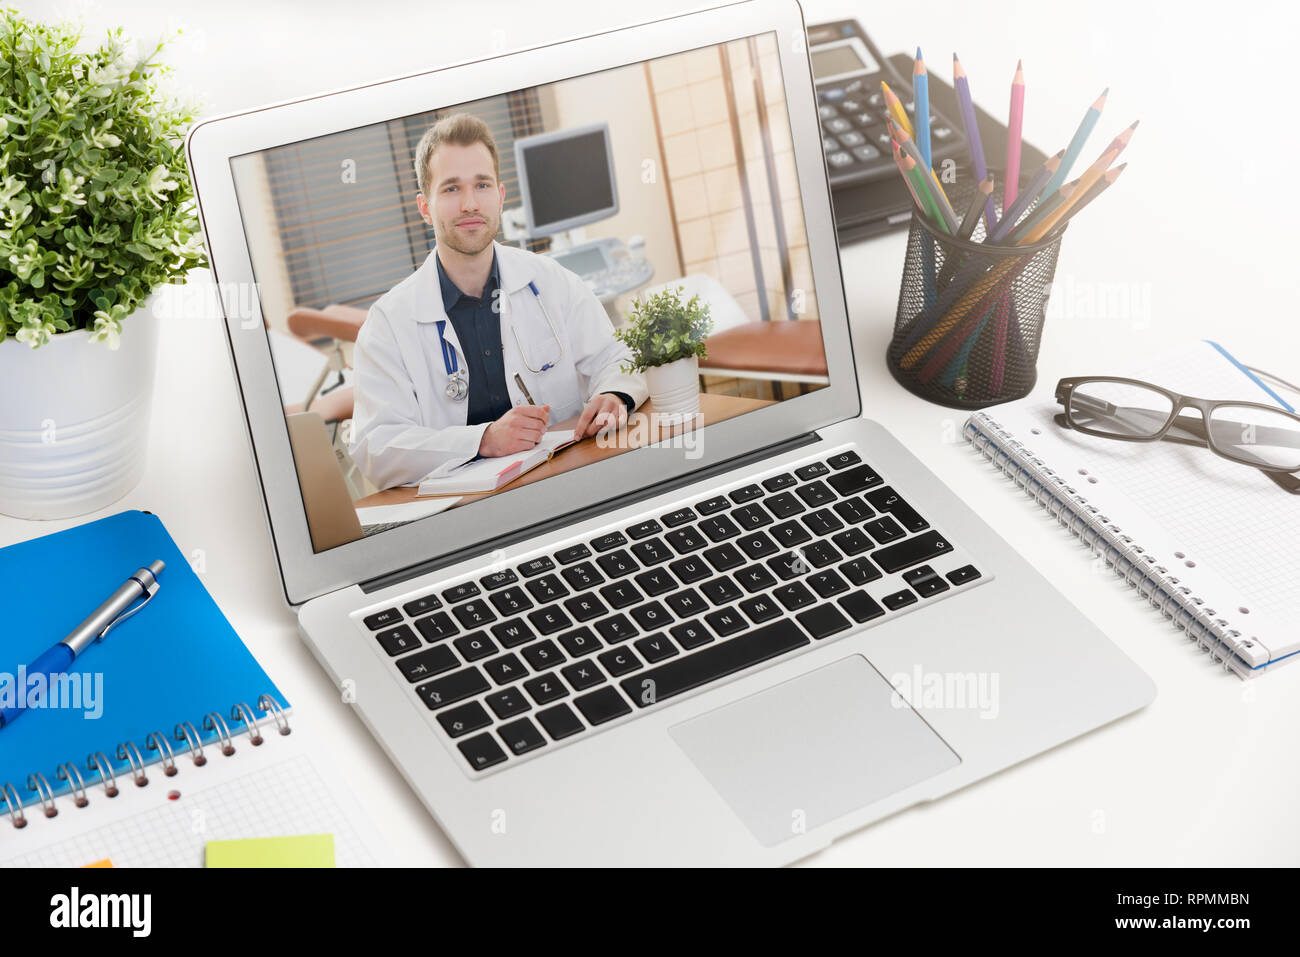 Doctor with a stethoscope on the computer laptop screen. Telemedicine or telehealth concept. - Stock Image